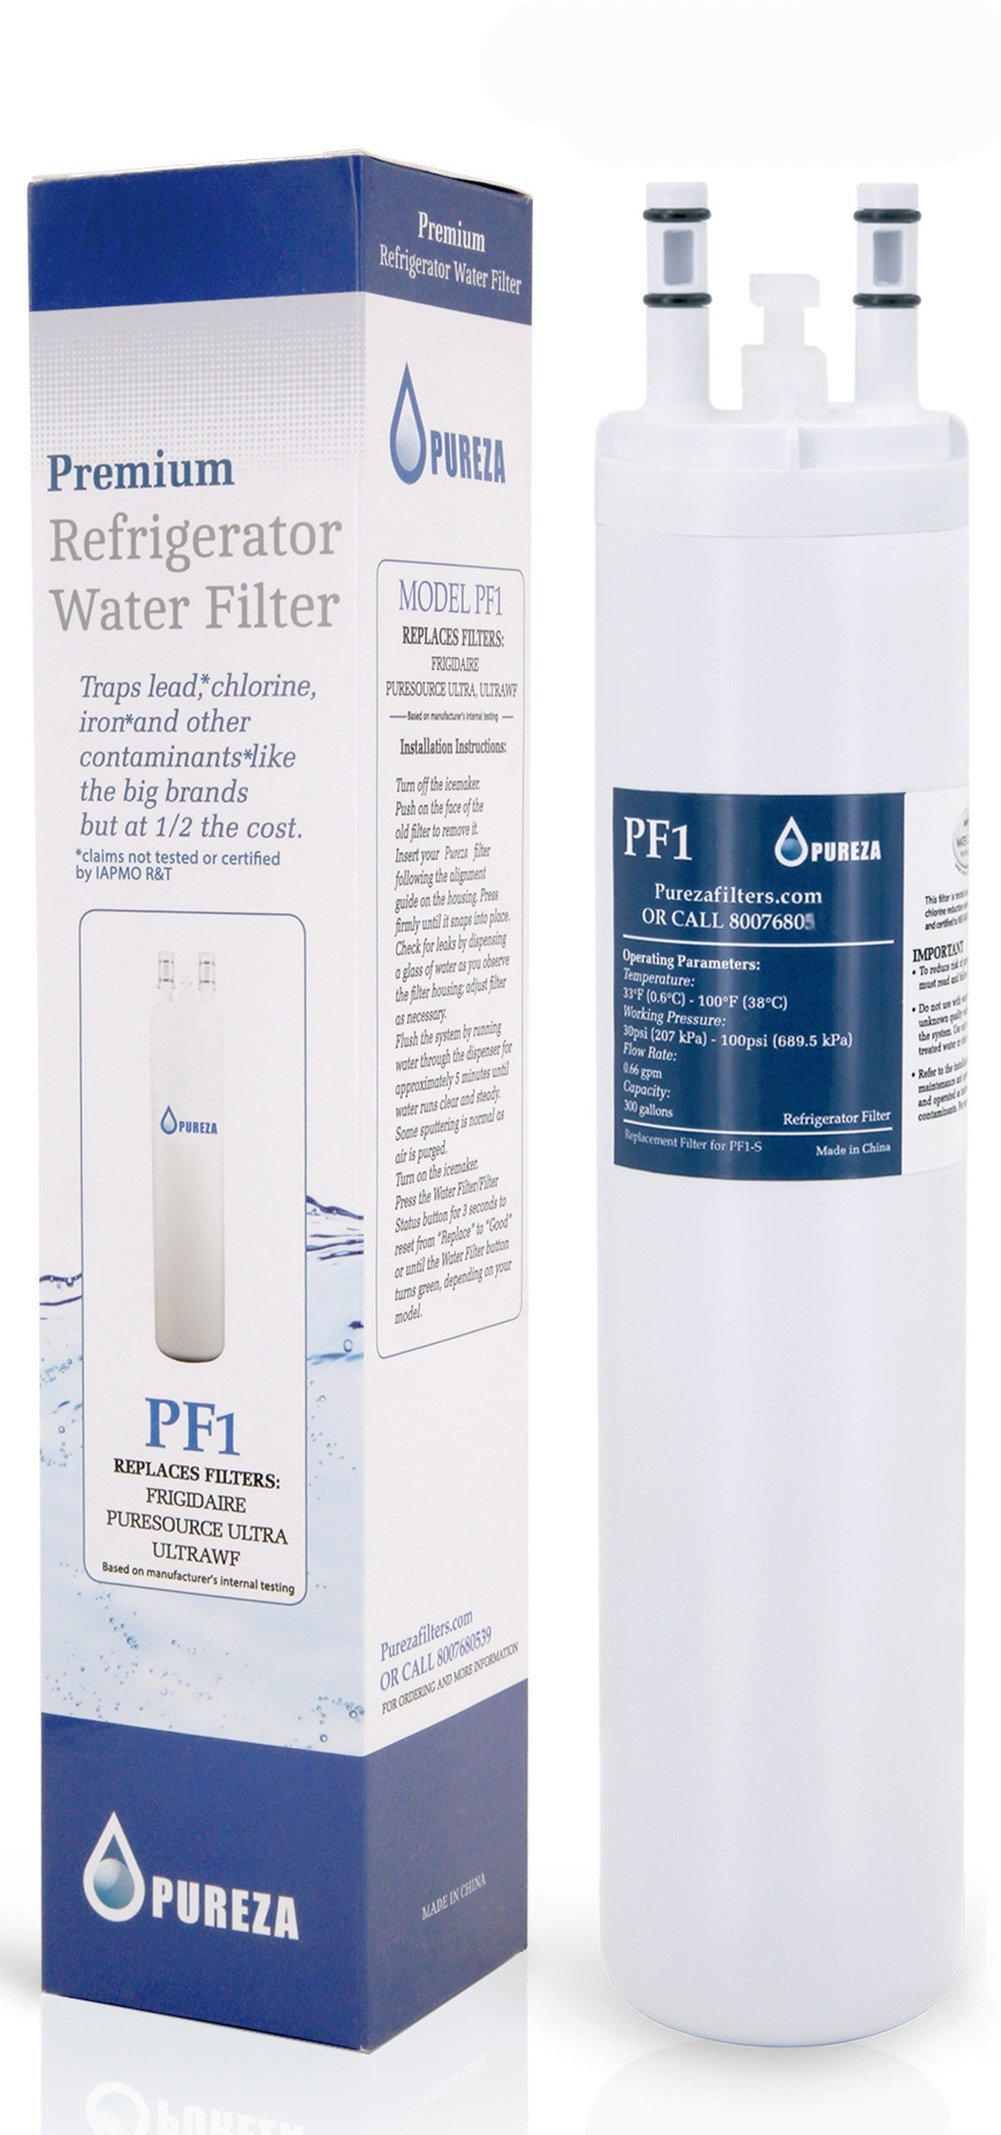 Pureza Water Filter - Compatible Cartridge For ULTRAWF Frigidaire Refrigerators & Ice Makers - Compatible with Puresource, Gallery, Professional Series Fridge and Some Electrolux Models, 1 Pack